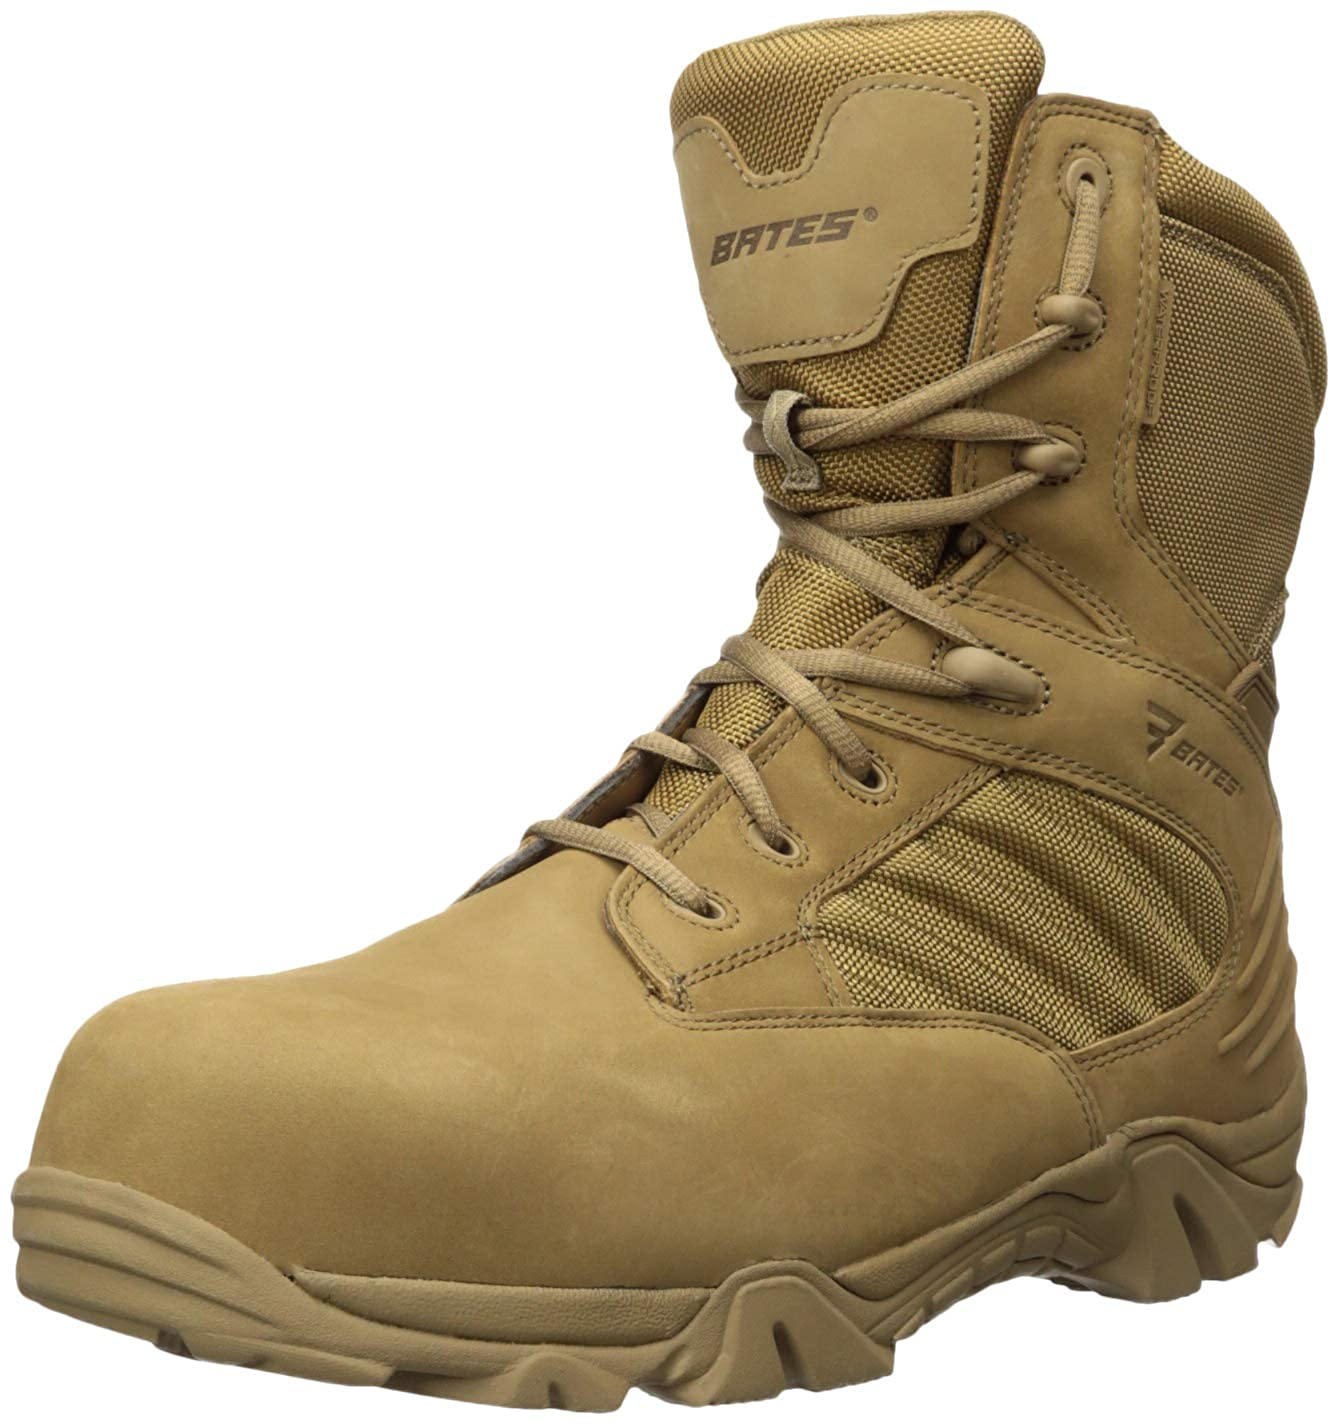 Bates Men's Gx-8 Waterproof Composite Toe Side Zip Military and Tactical Boot E04272